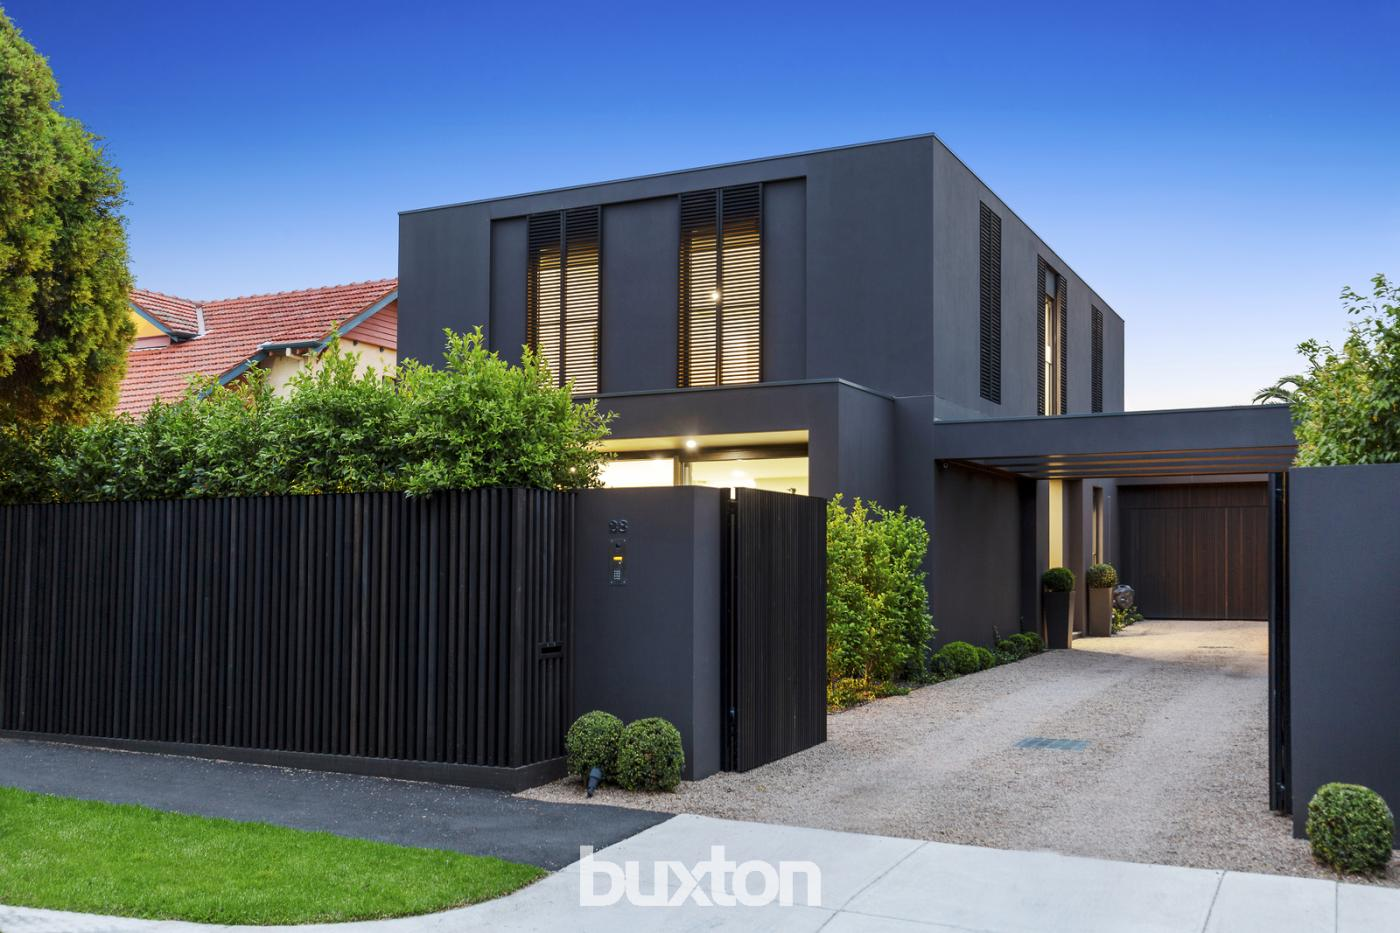 28-campbell-street-brighton-vic-3186-real-estate-photo-1-xlarge-12370462